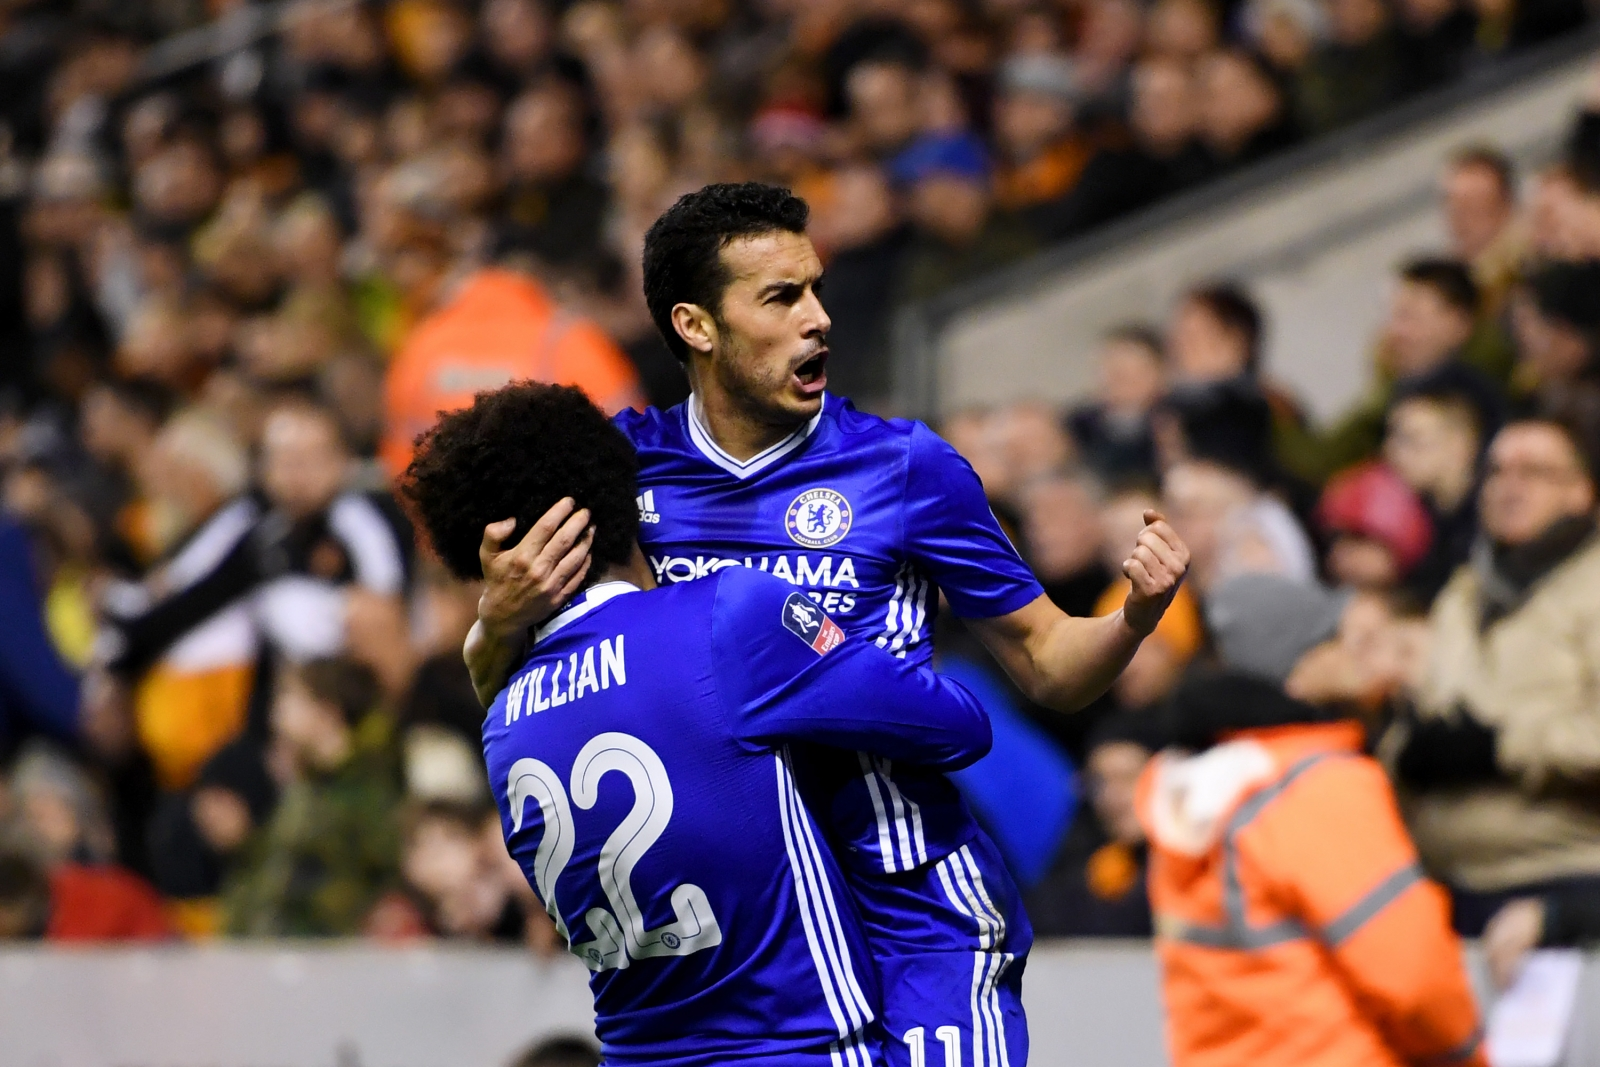 Wolves 0-2 Chelsea: FA Cup fifth round as it happened